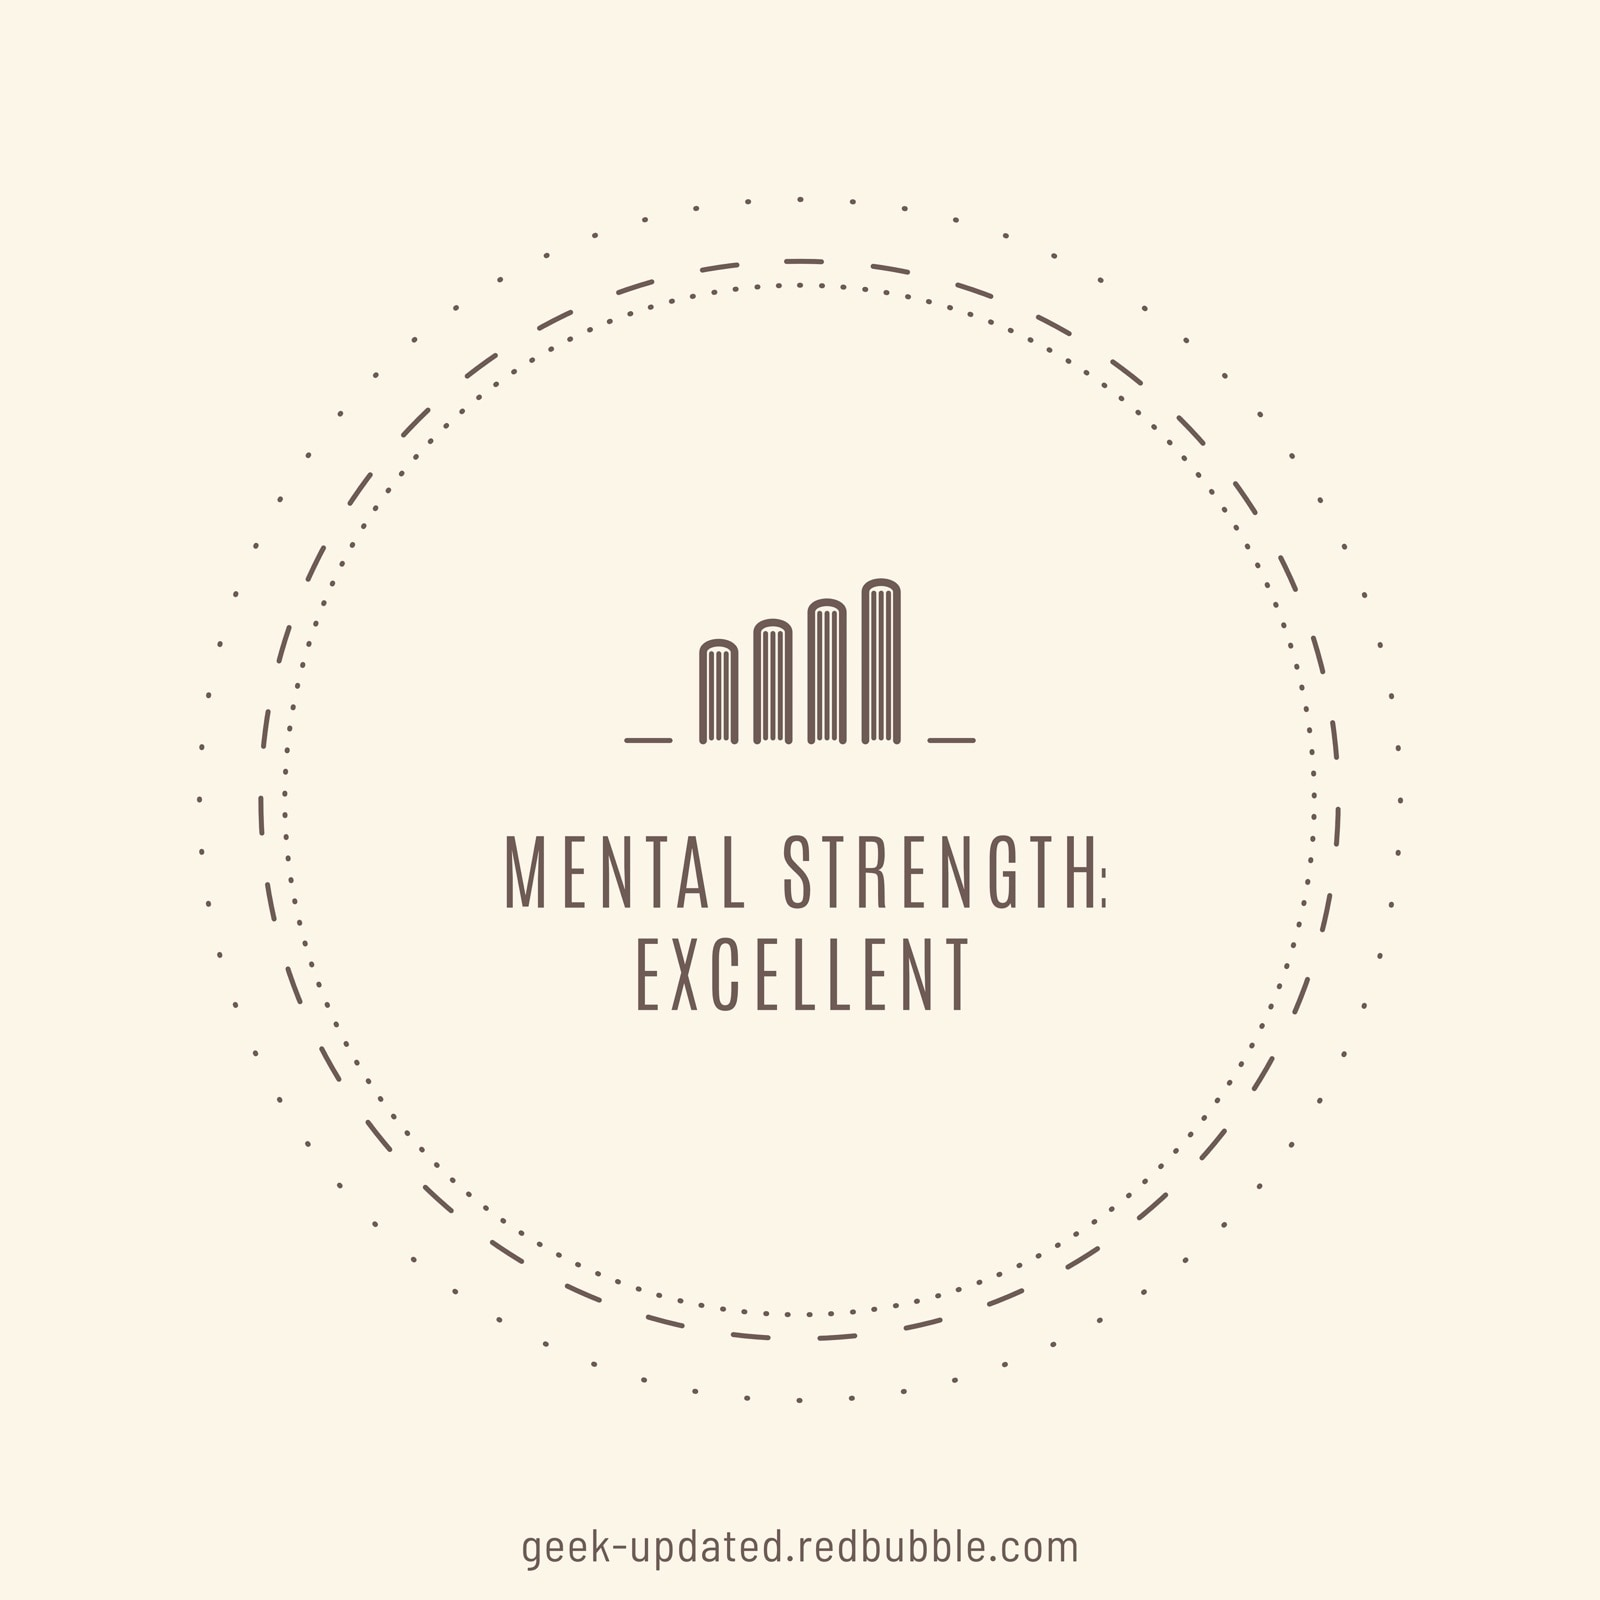 Mental health excellent thanks to books - designed by Piotr Kowalczyk